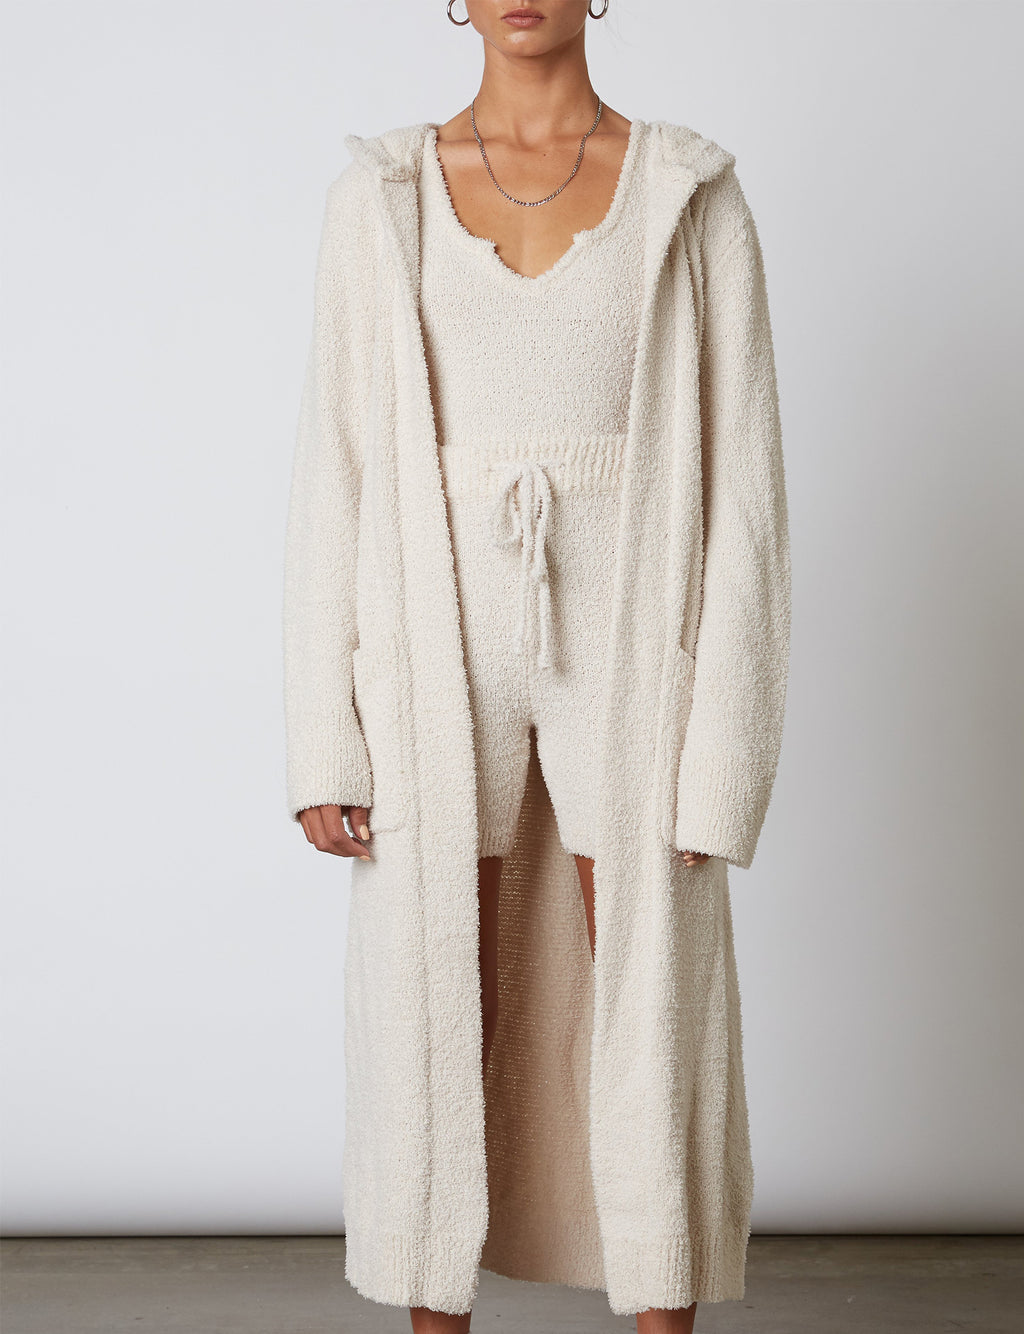 Hooded Duster Cardigan in Natural